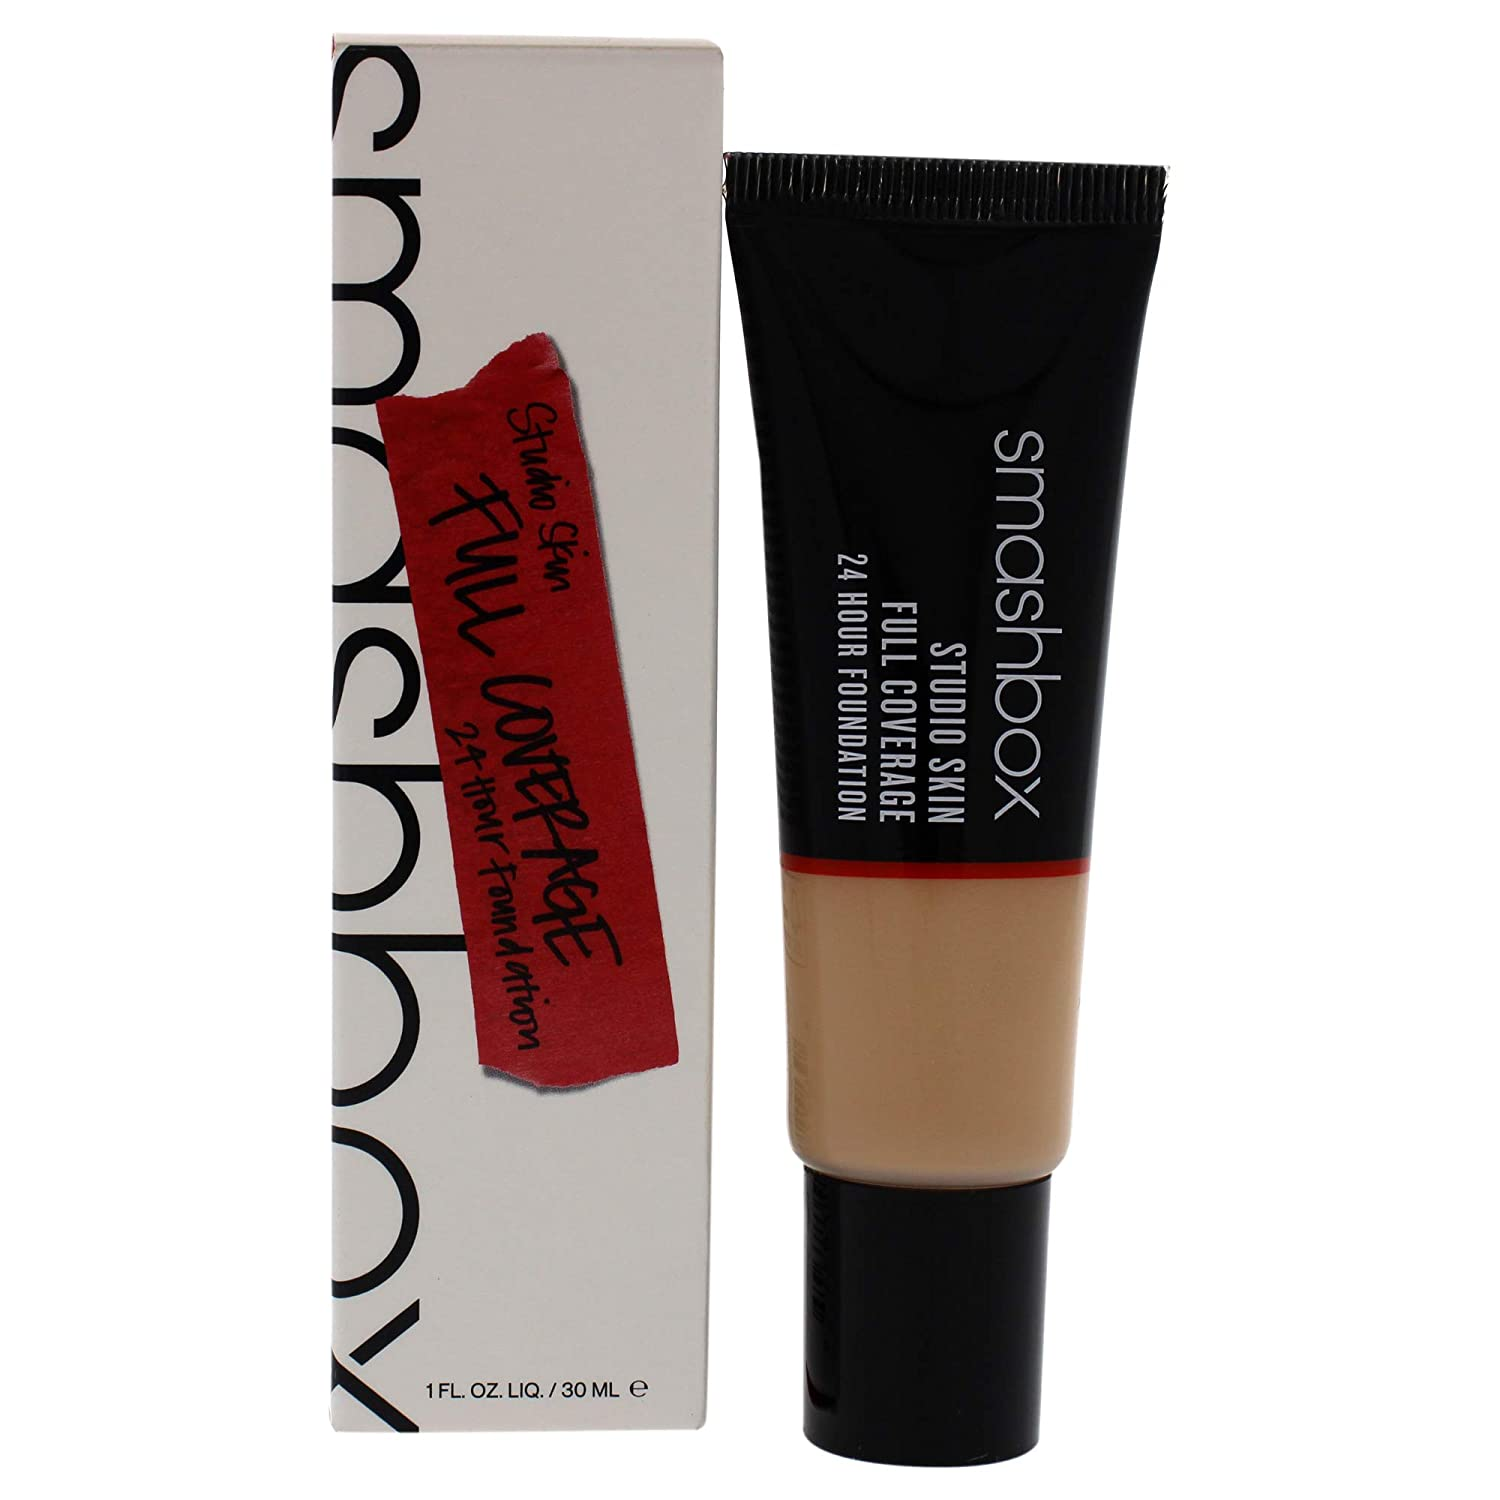 Smashbox Skin Full Coverage 24 Hour Foundation